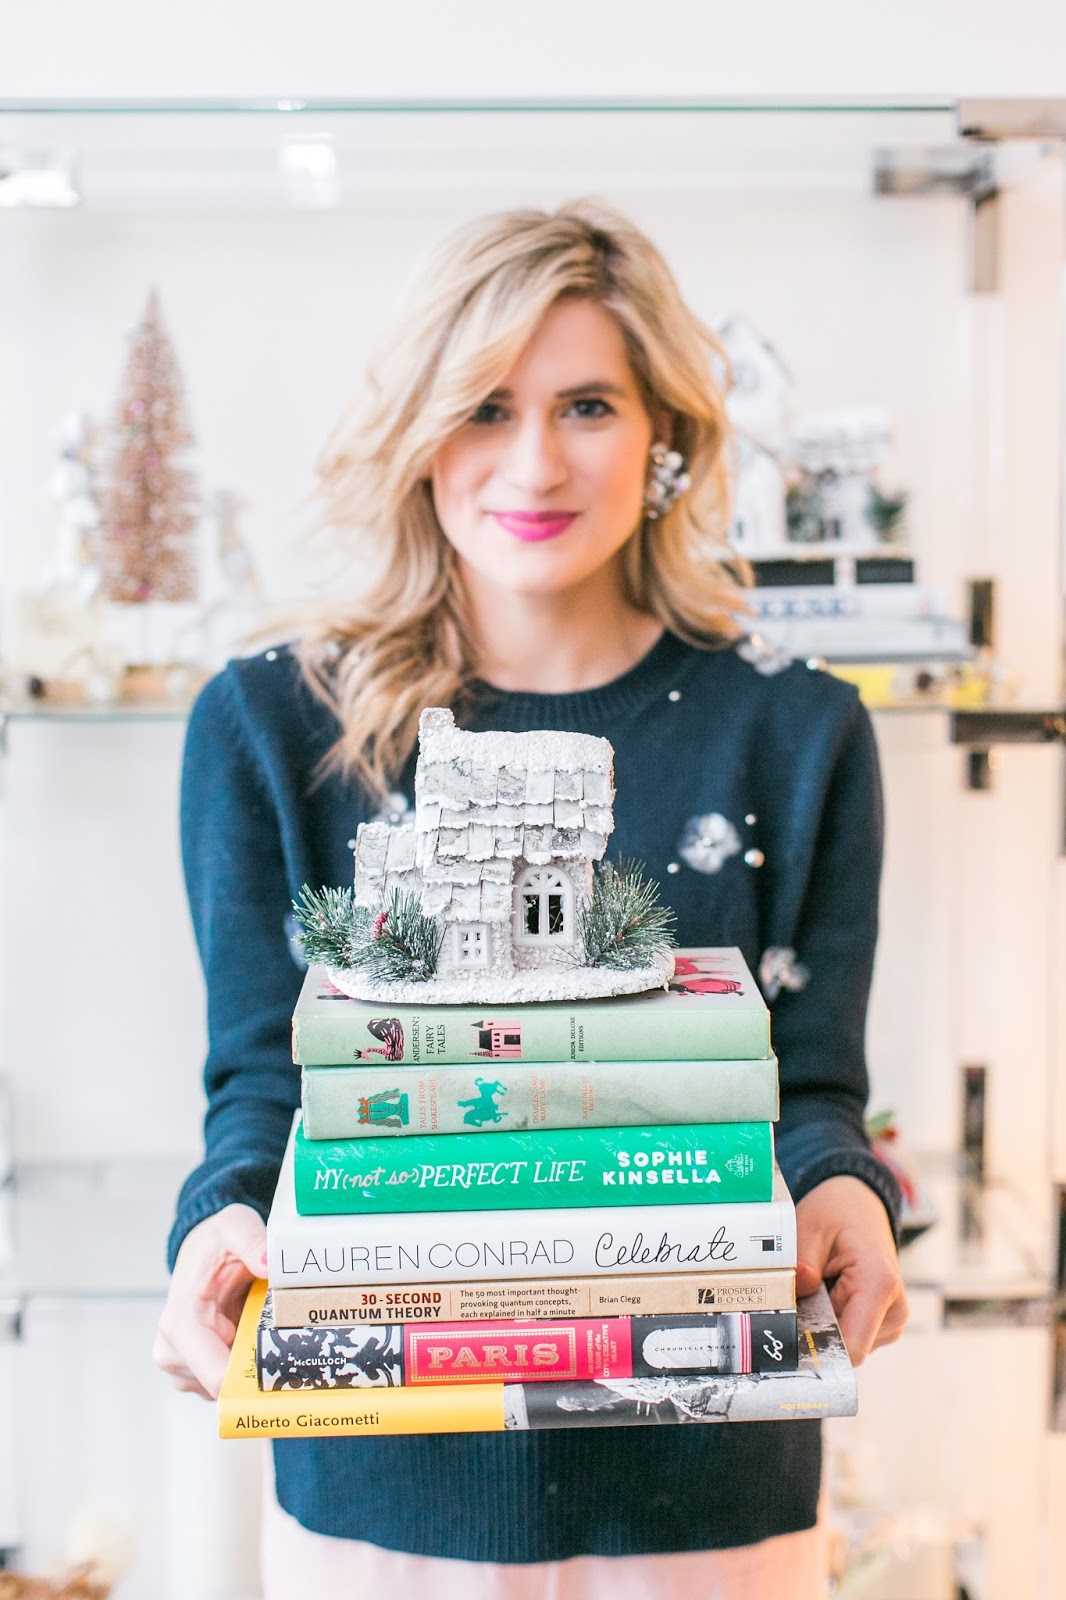 Bijuleni - 5 Easy Ways to Accessorize your Bookshelf for the Holidays - Vintage Holiday house and stuck of books